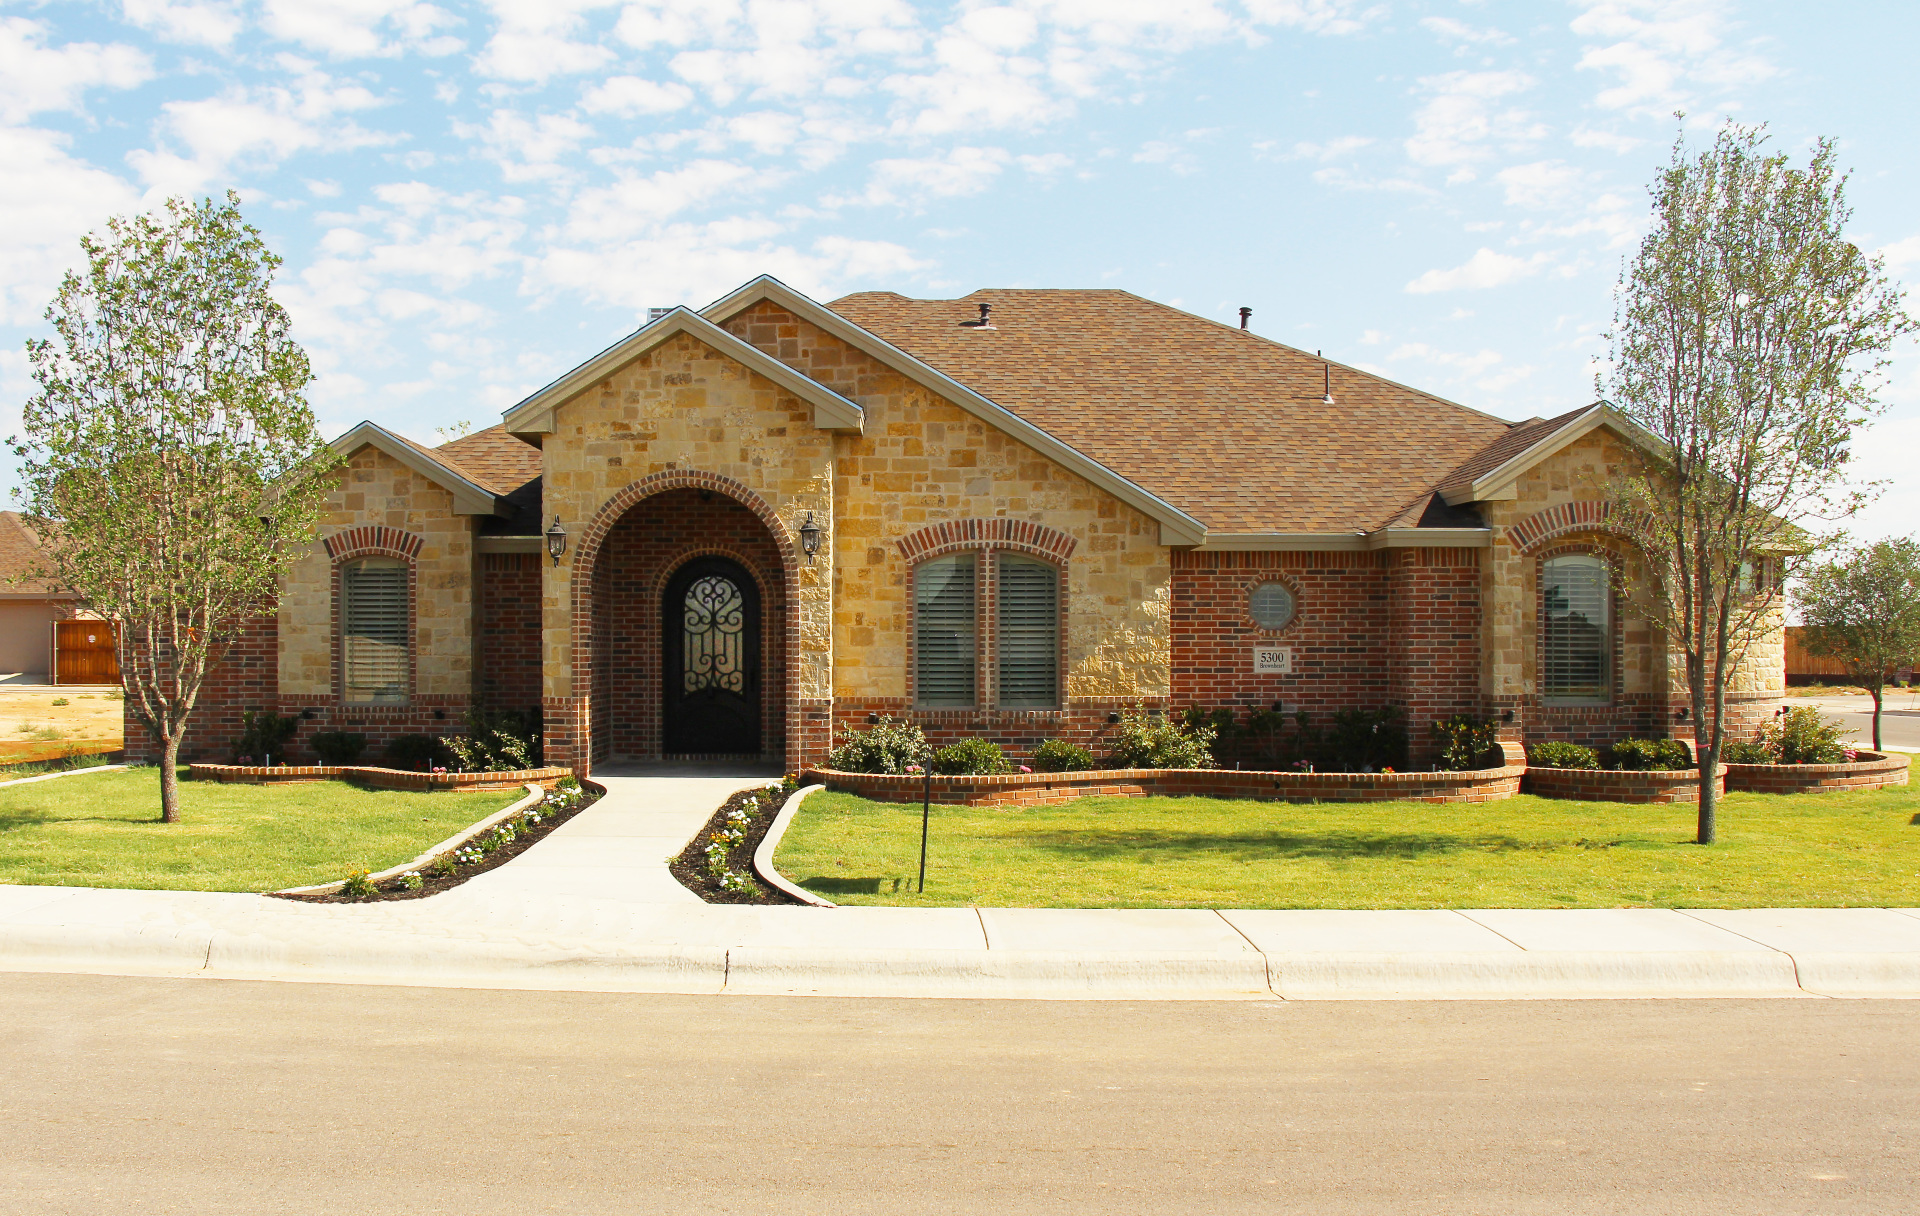 5300 Brown Heart Ln Midland, TX 79707 4bed/3bath 2,757sqf